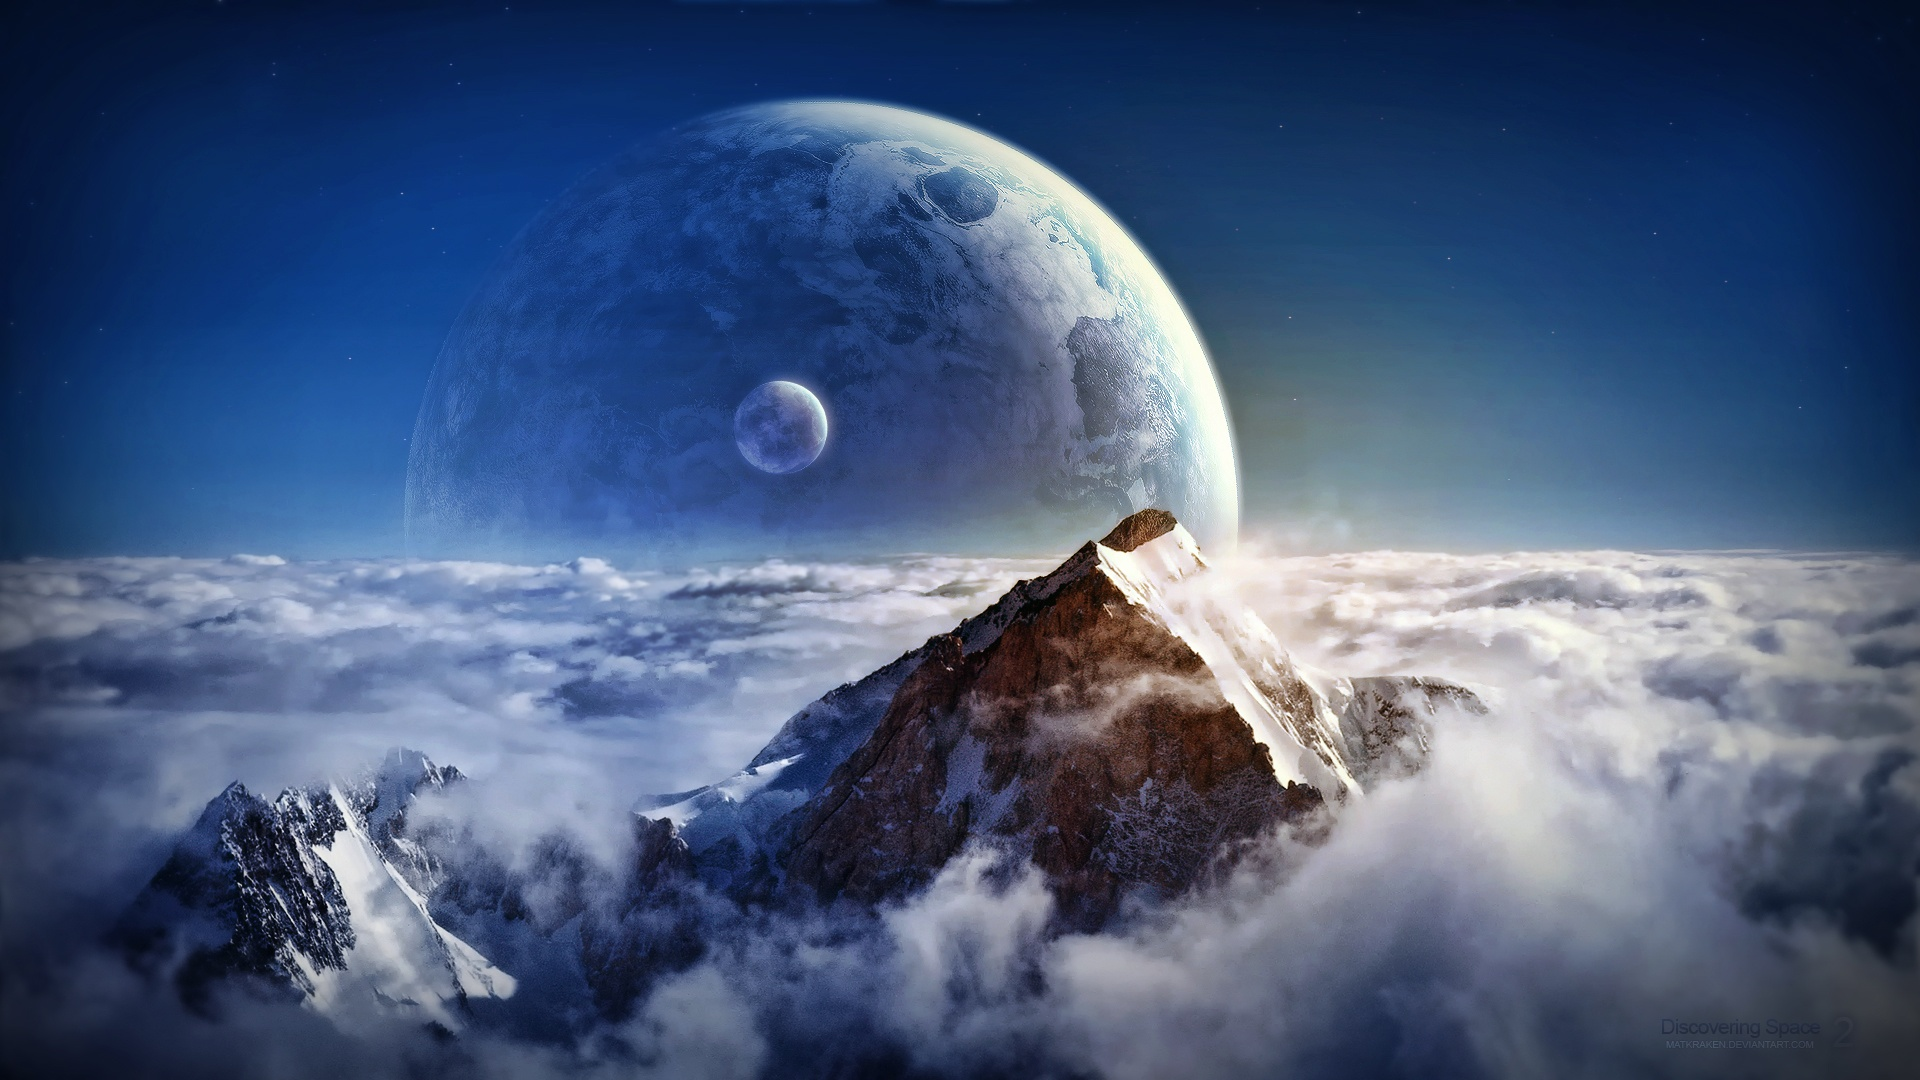 space 1080p wallpaper landscape - photo #5